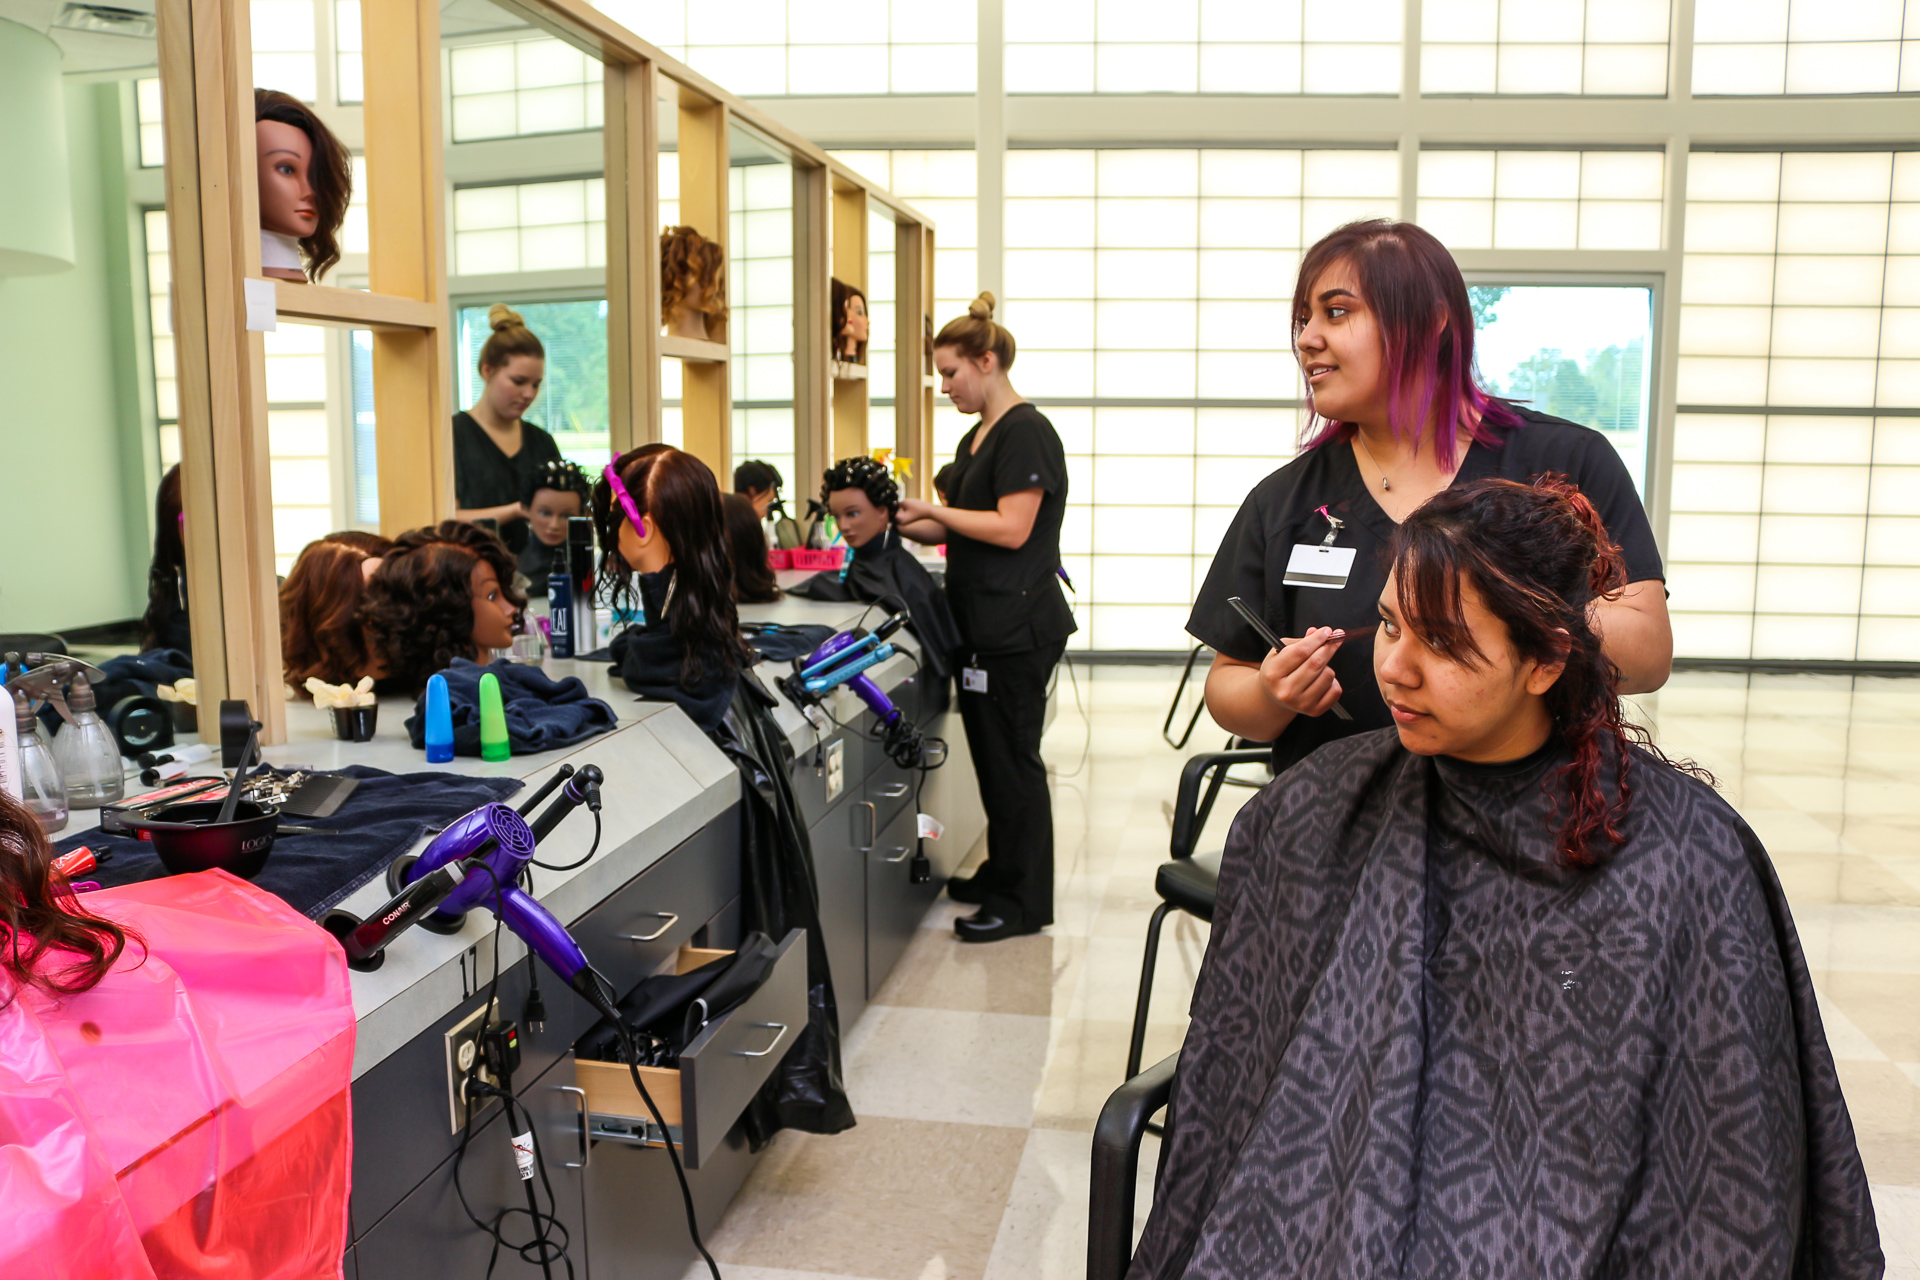 A student cutting hair in the cosmetology salon.